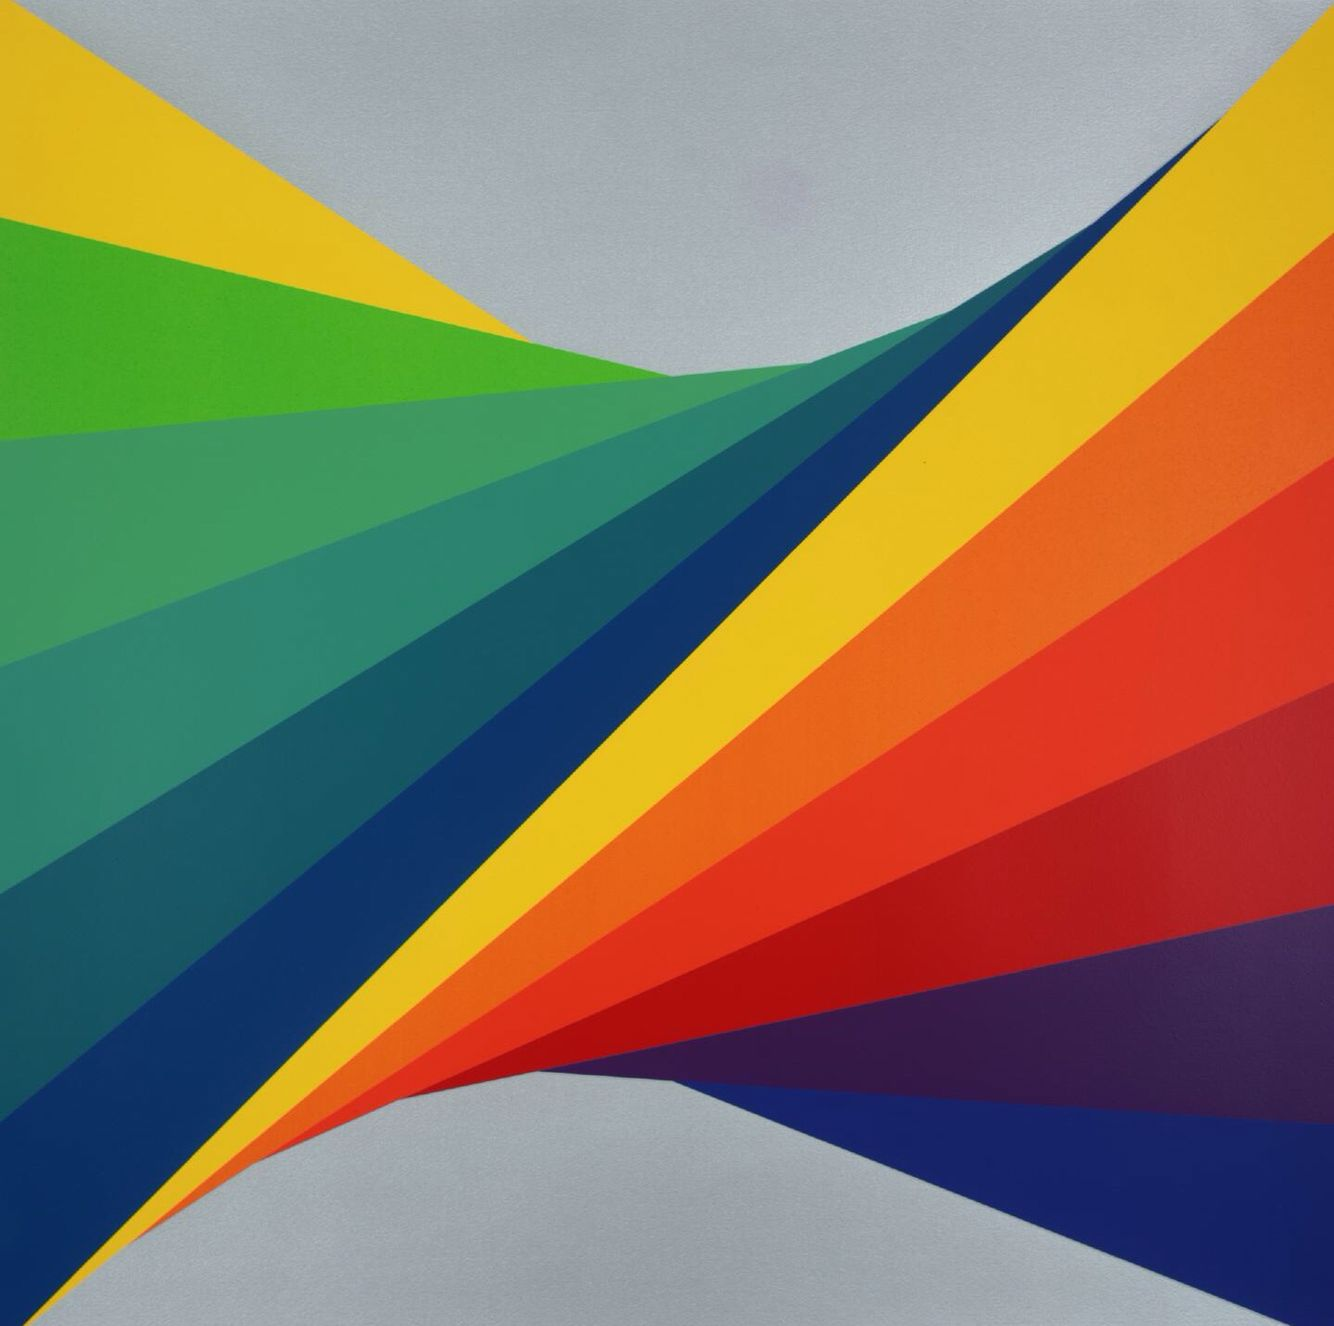 Herbert #Bayer - #Chromatic Twist, 1970. Bayer's #paintings, prints and designs continue to inspire young #graphic artists today and his typeface is used all over the world.